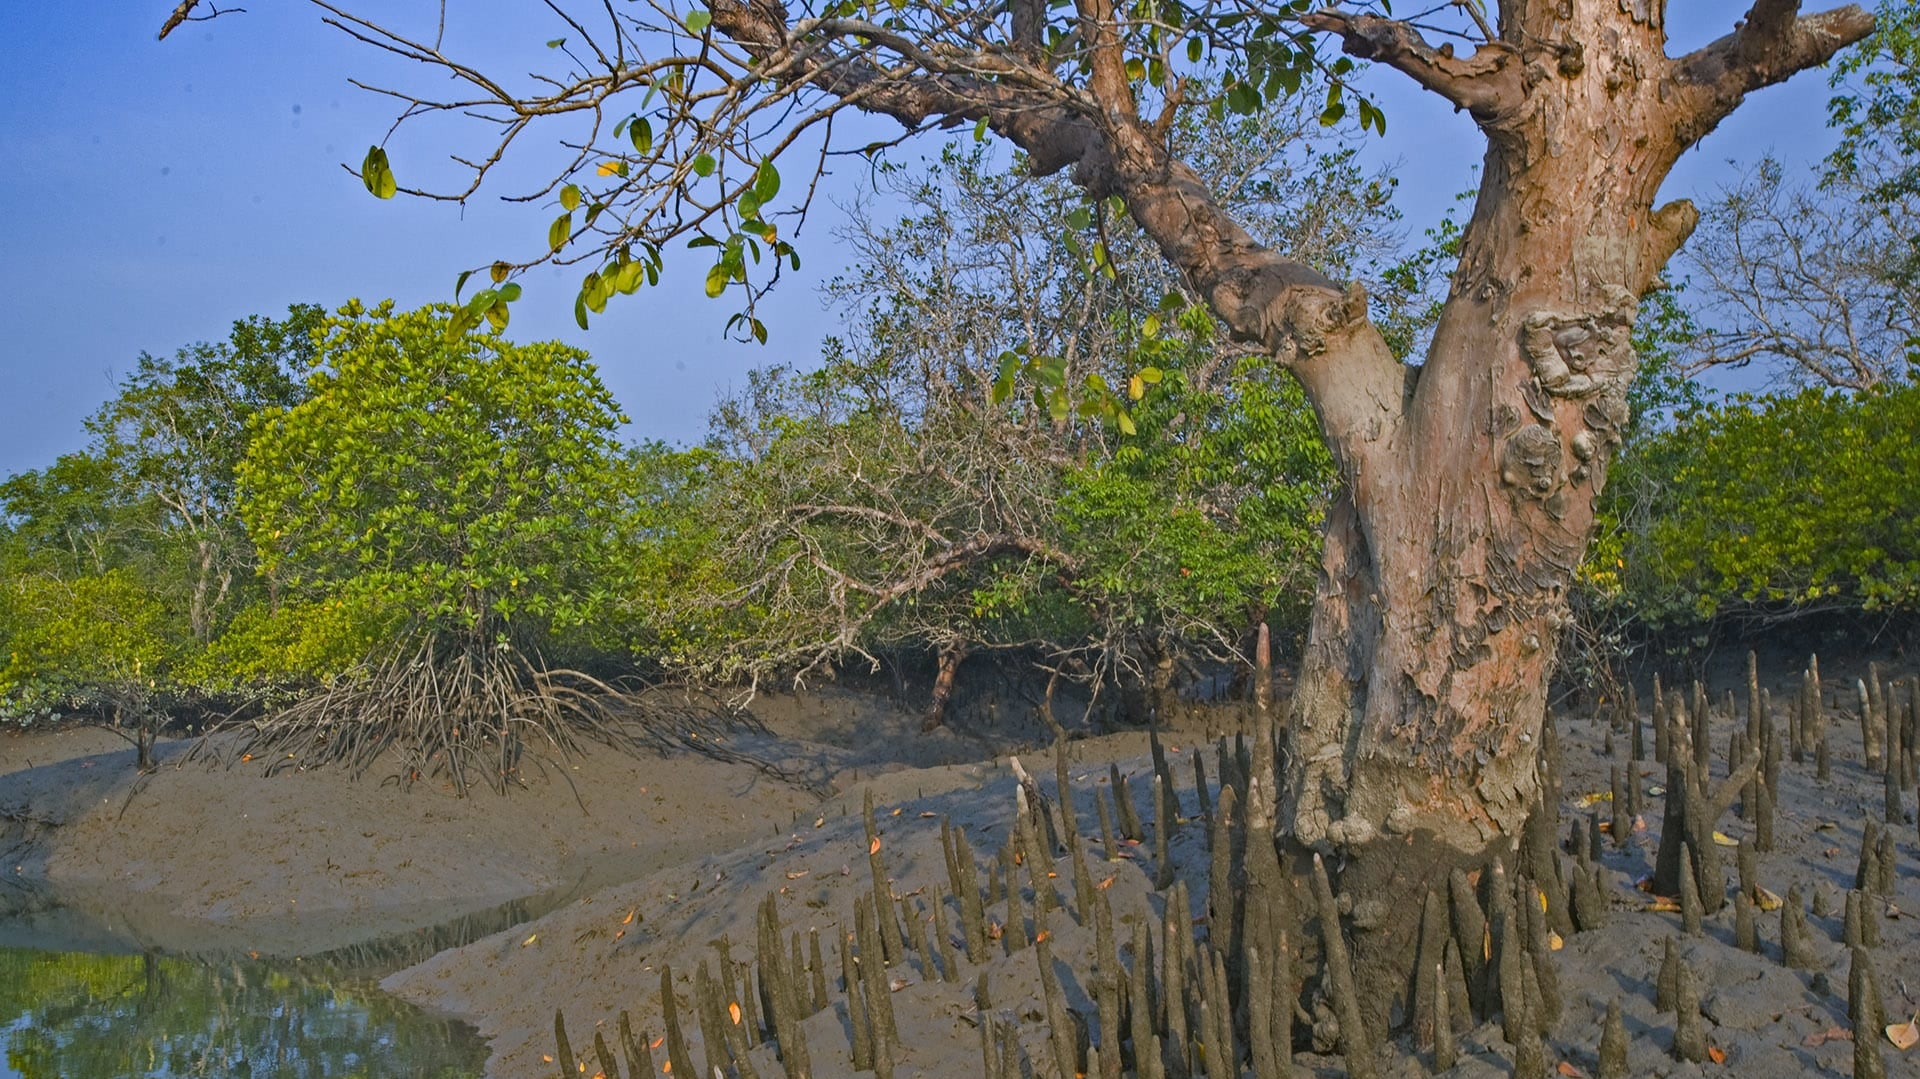 Sultry Sundarbans: The Tide, the Forest, and the Tiger Goddess